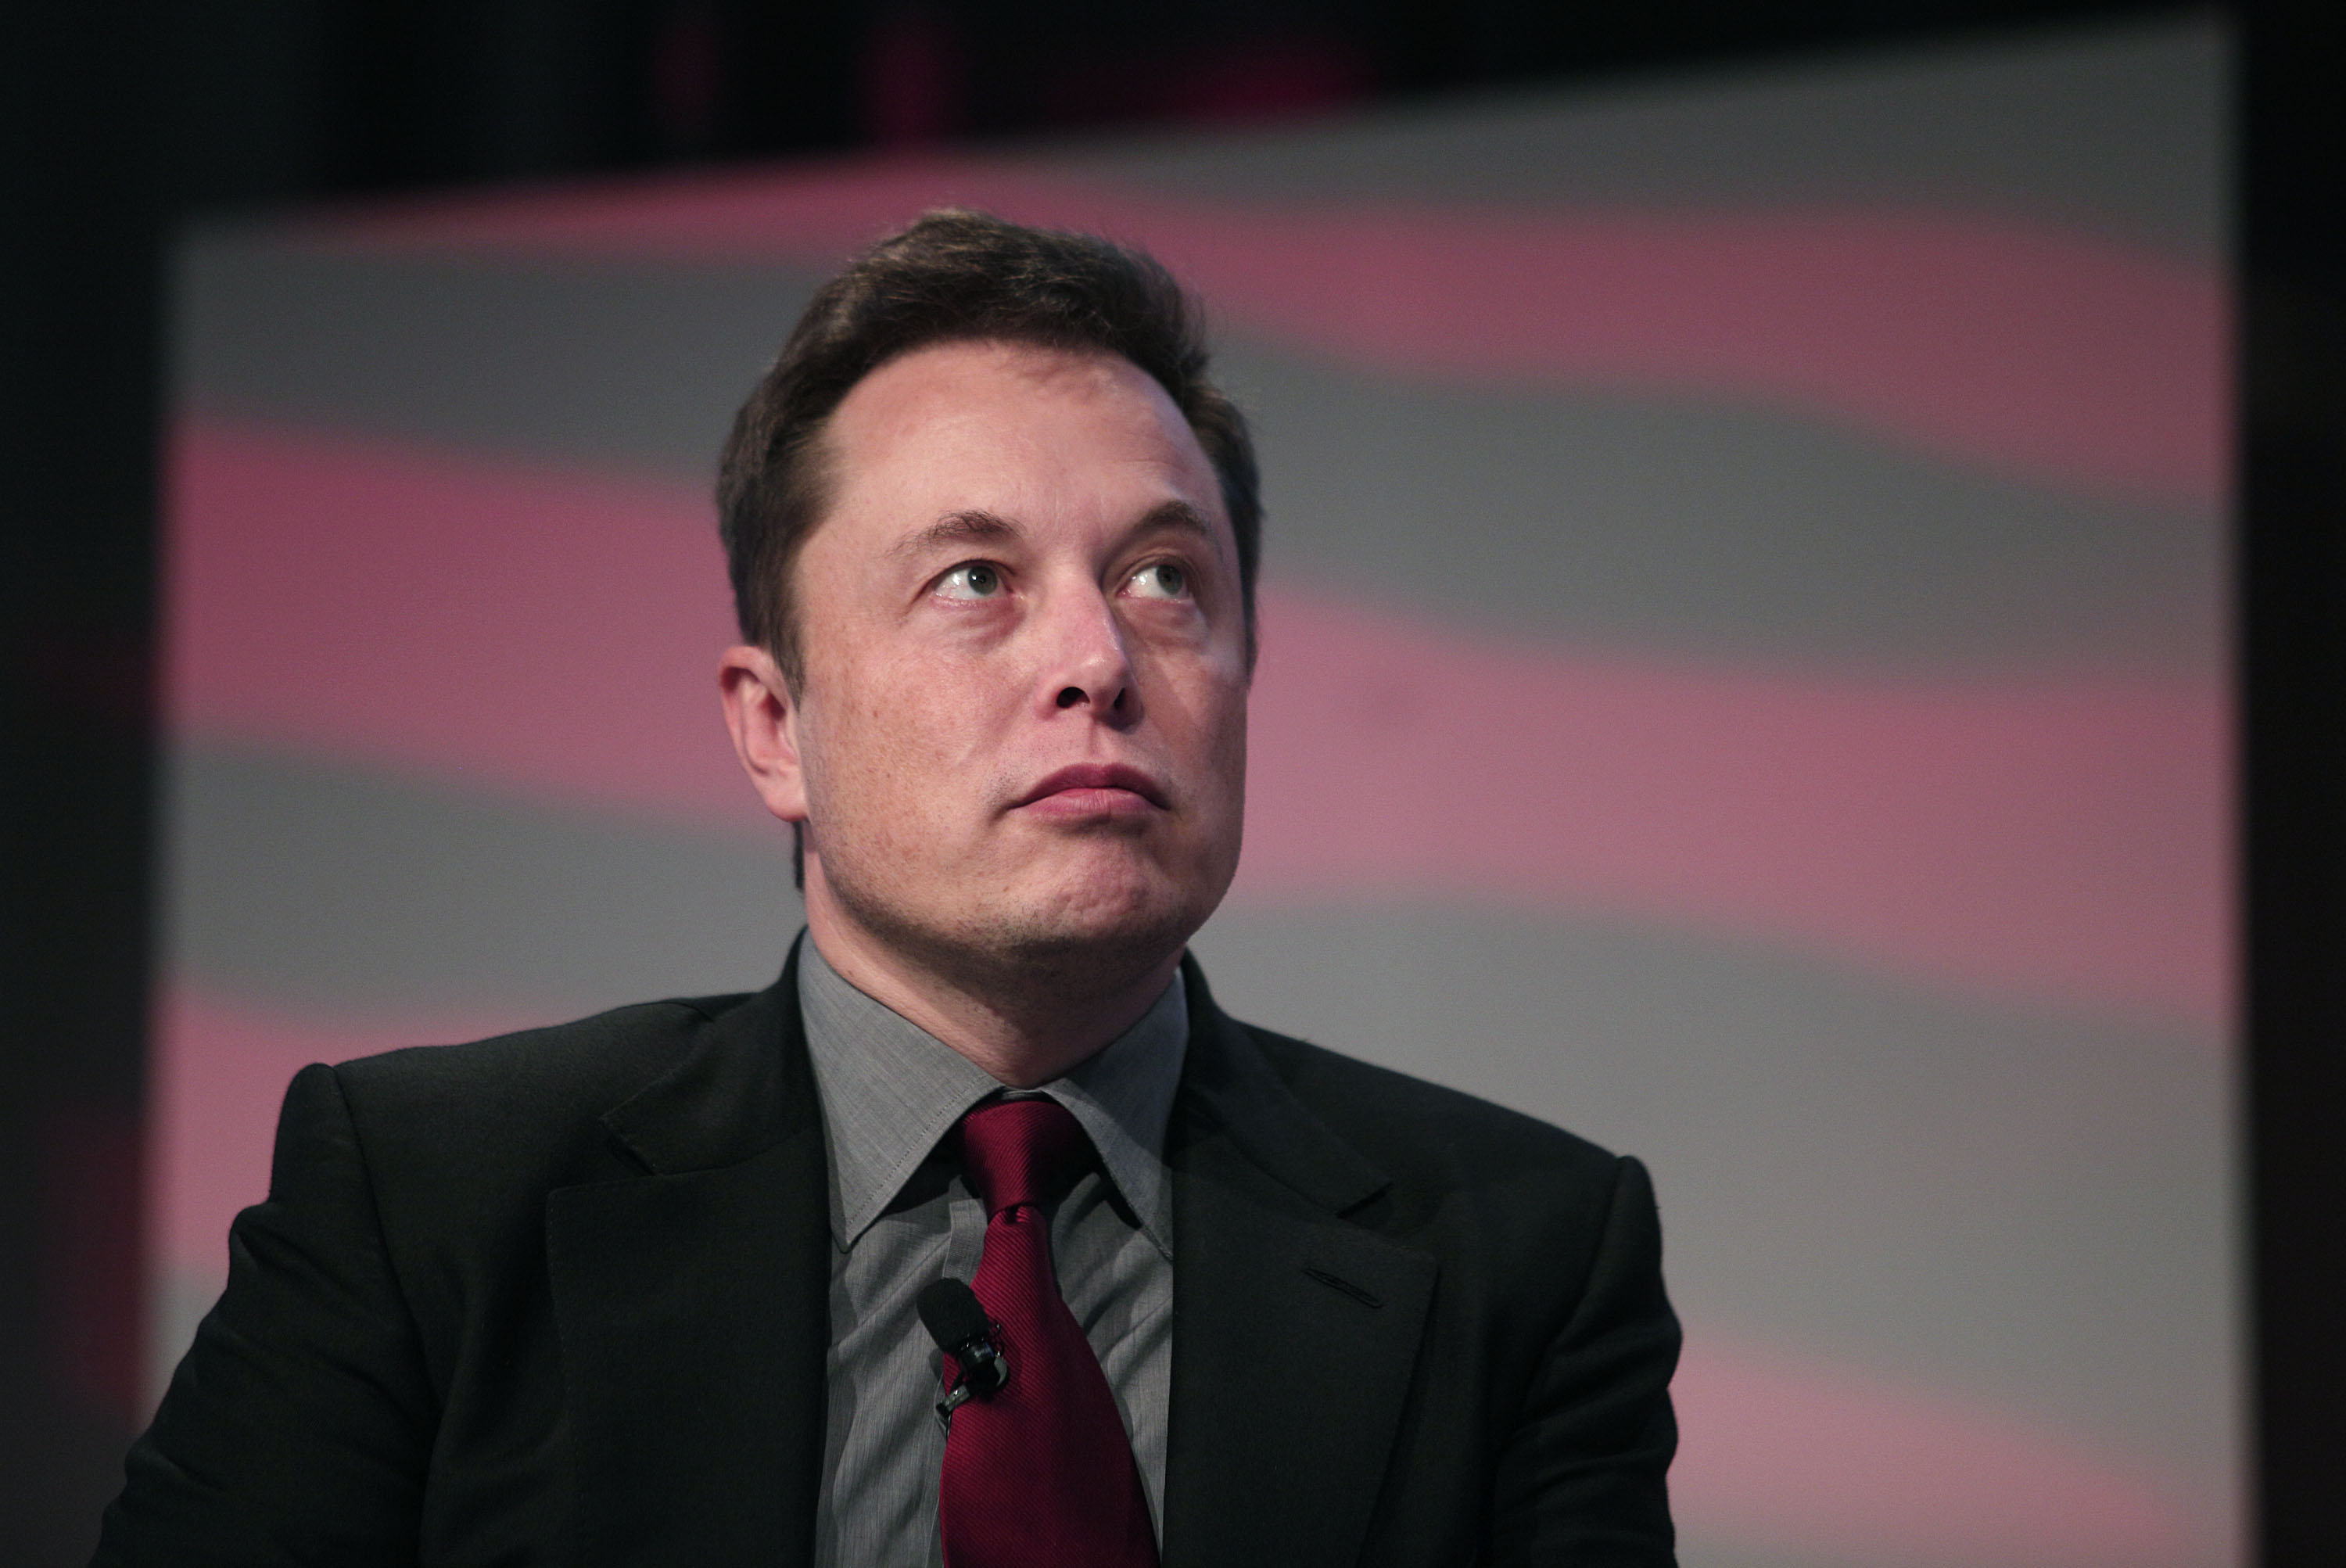 Elon Musk to Divorce for a Third Time